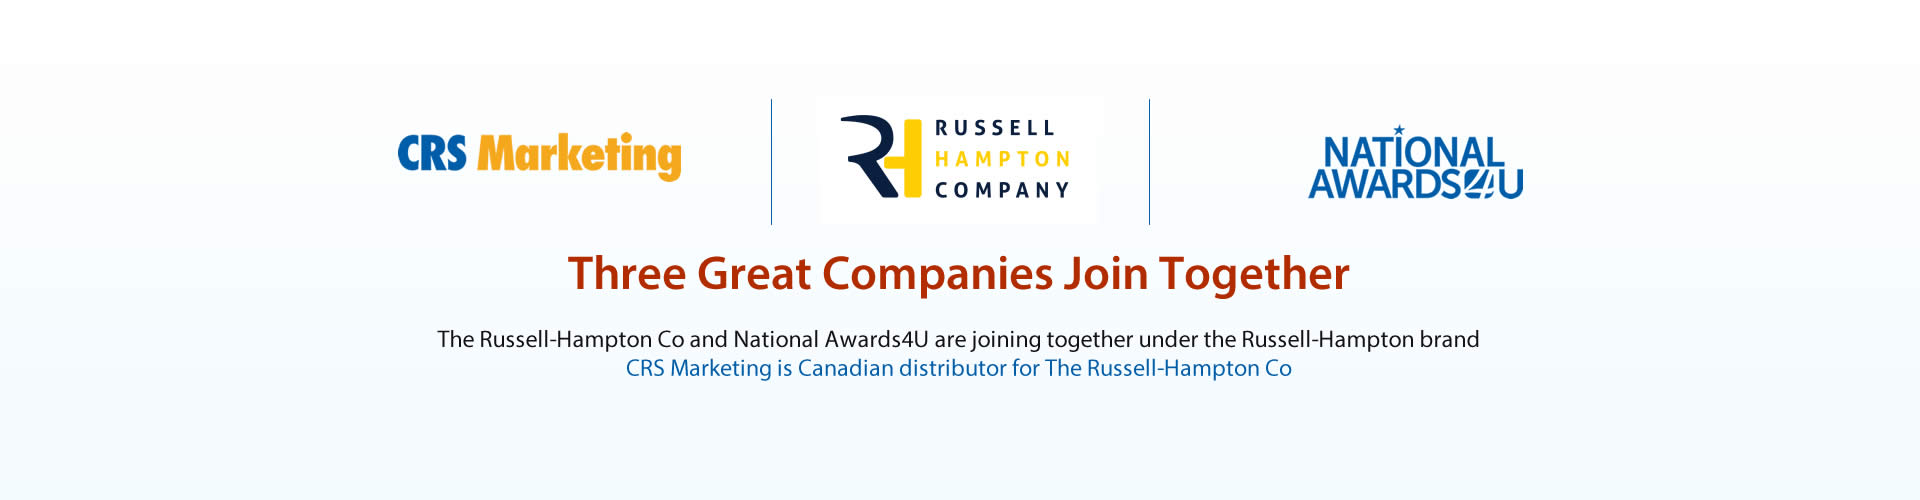 Canadian distributor for The Russell-Hampton Co